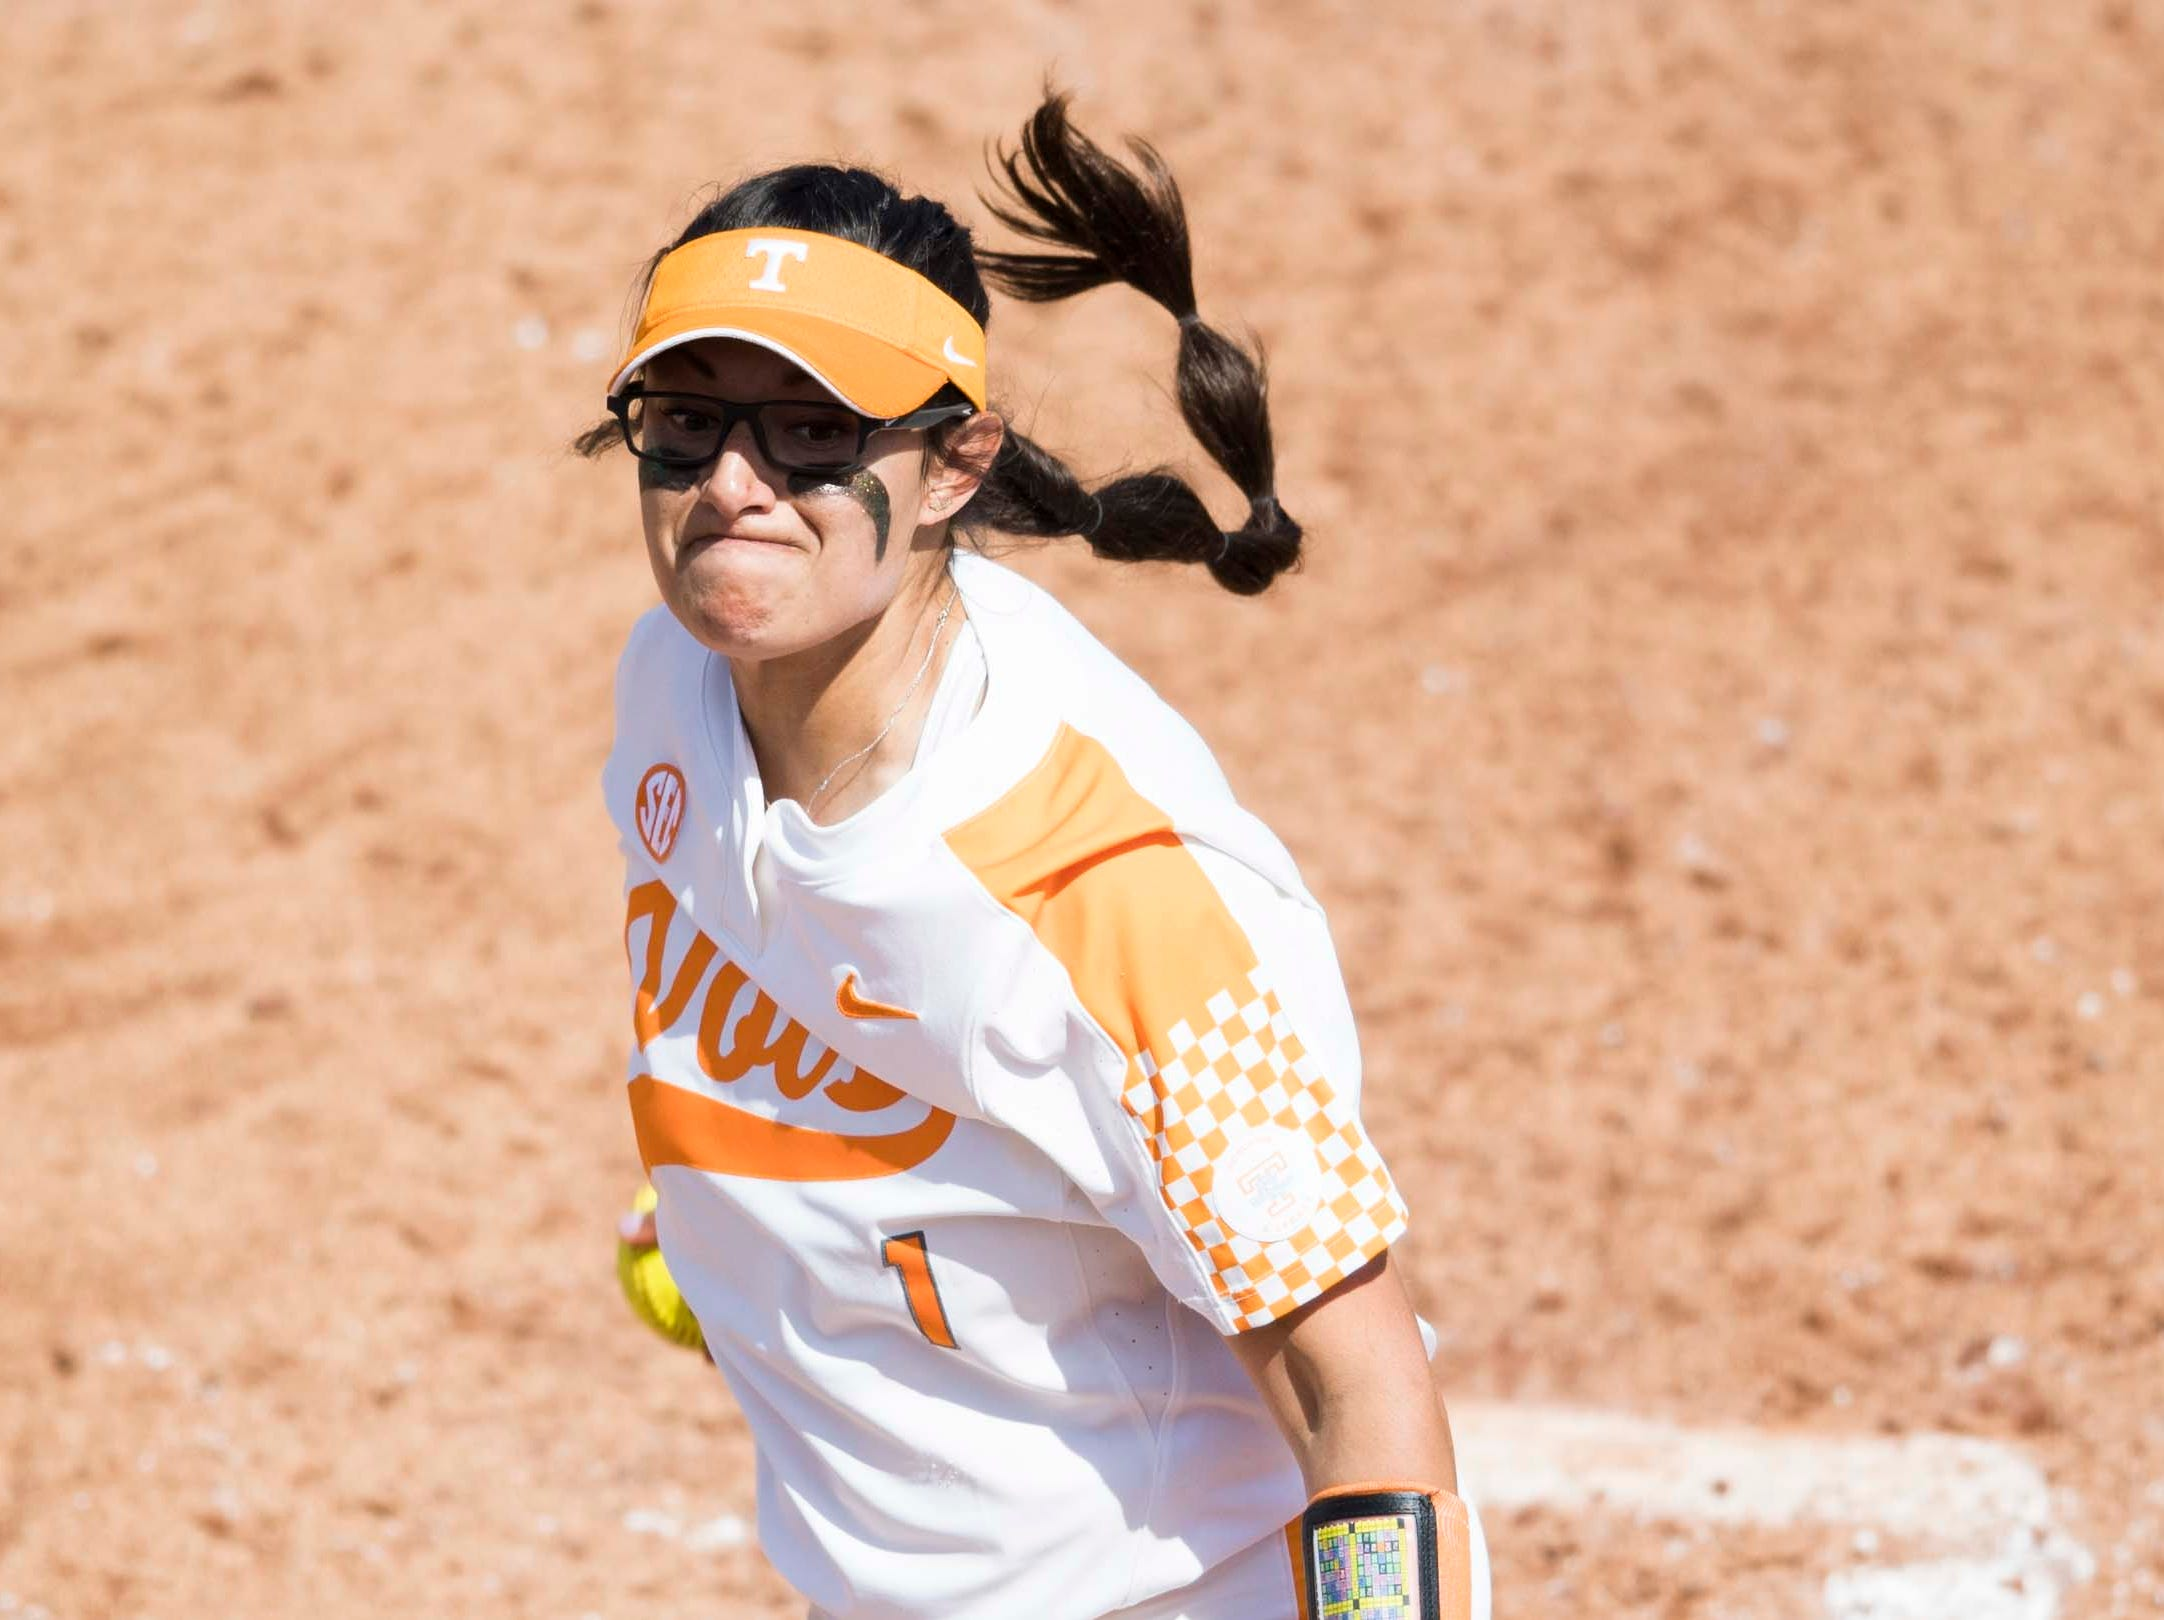 Tennessee pitcher Matty Moss (1) throws a pitch during a Lady Vols softball game against Arkansas at Sherri Parker Lee stadium on University of Tennessee's campus in Knoxville Sunday, March 24, 2019. The Lady Vols defeated Arkansas.